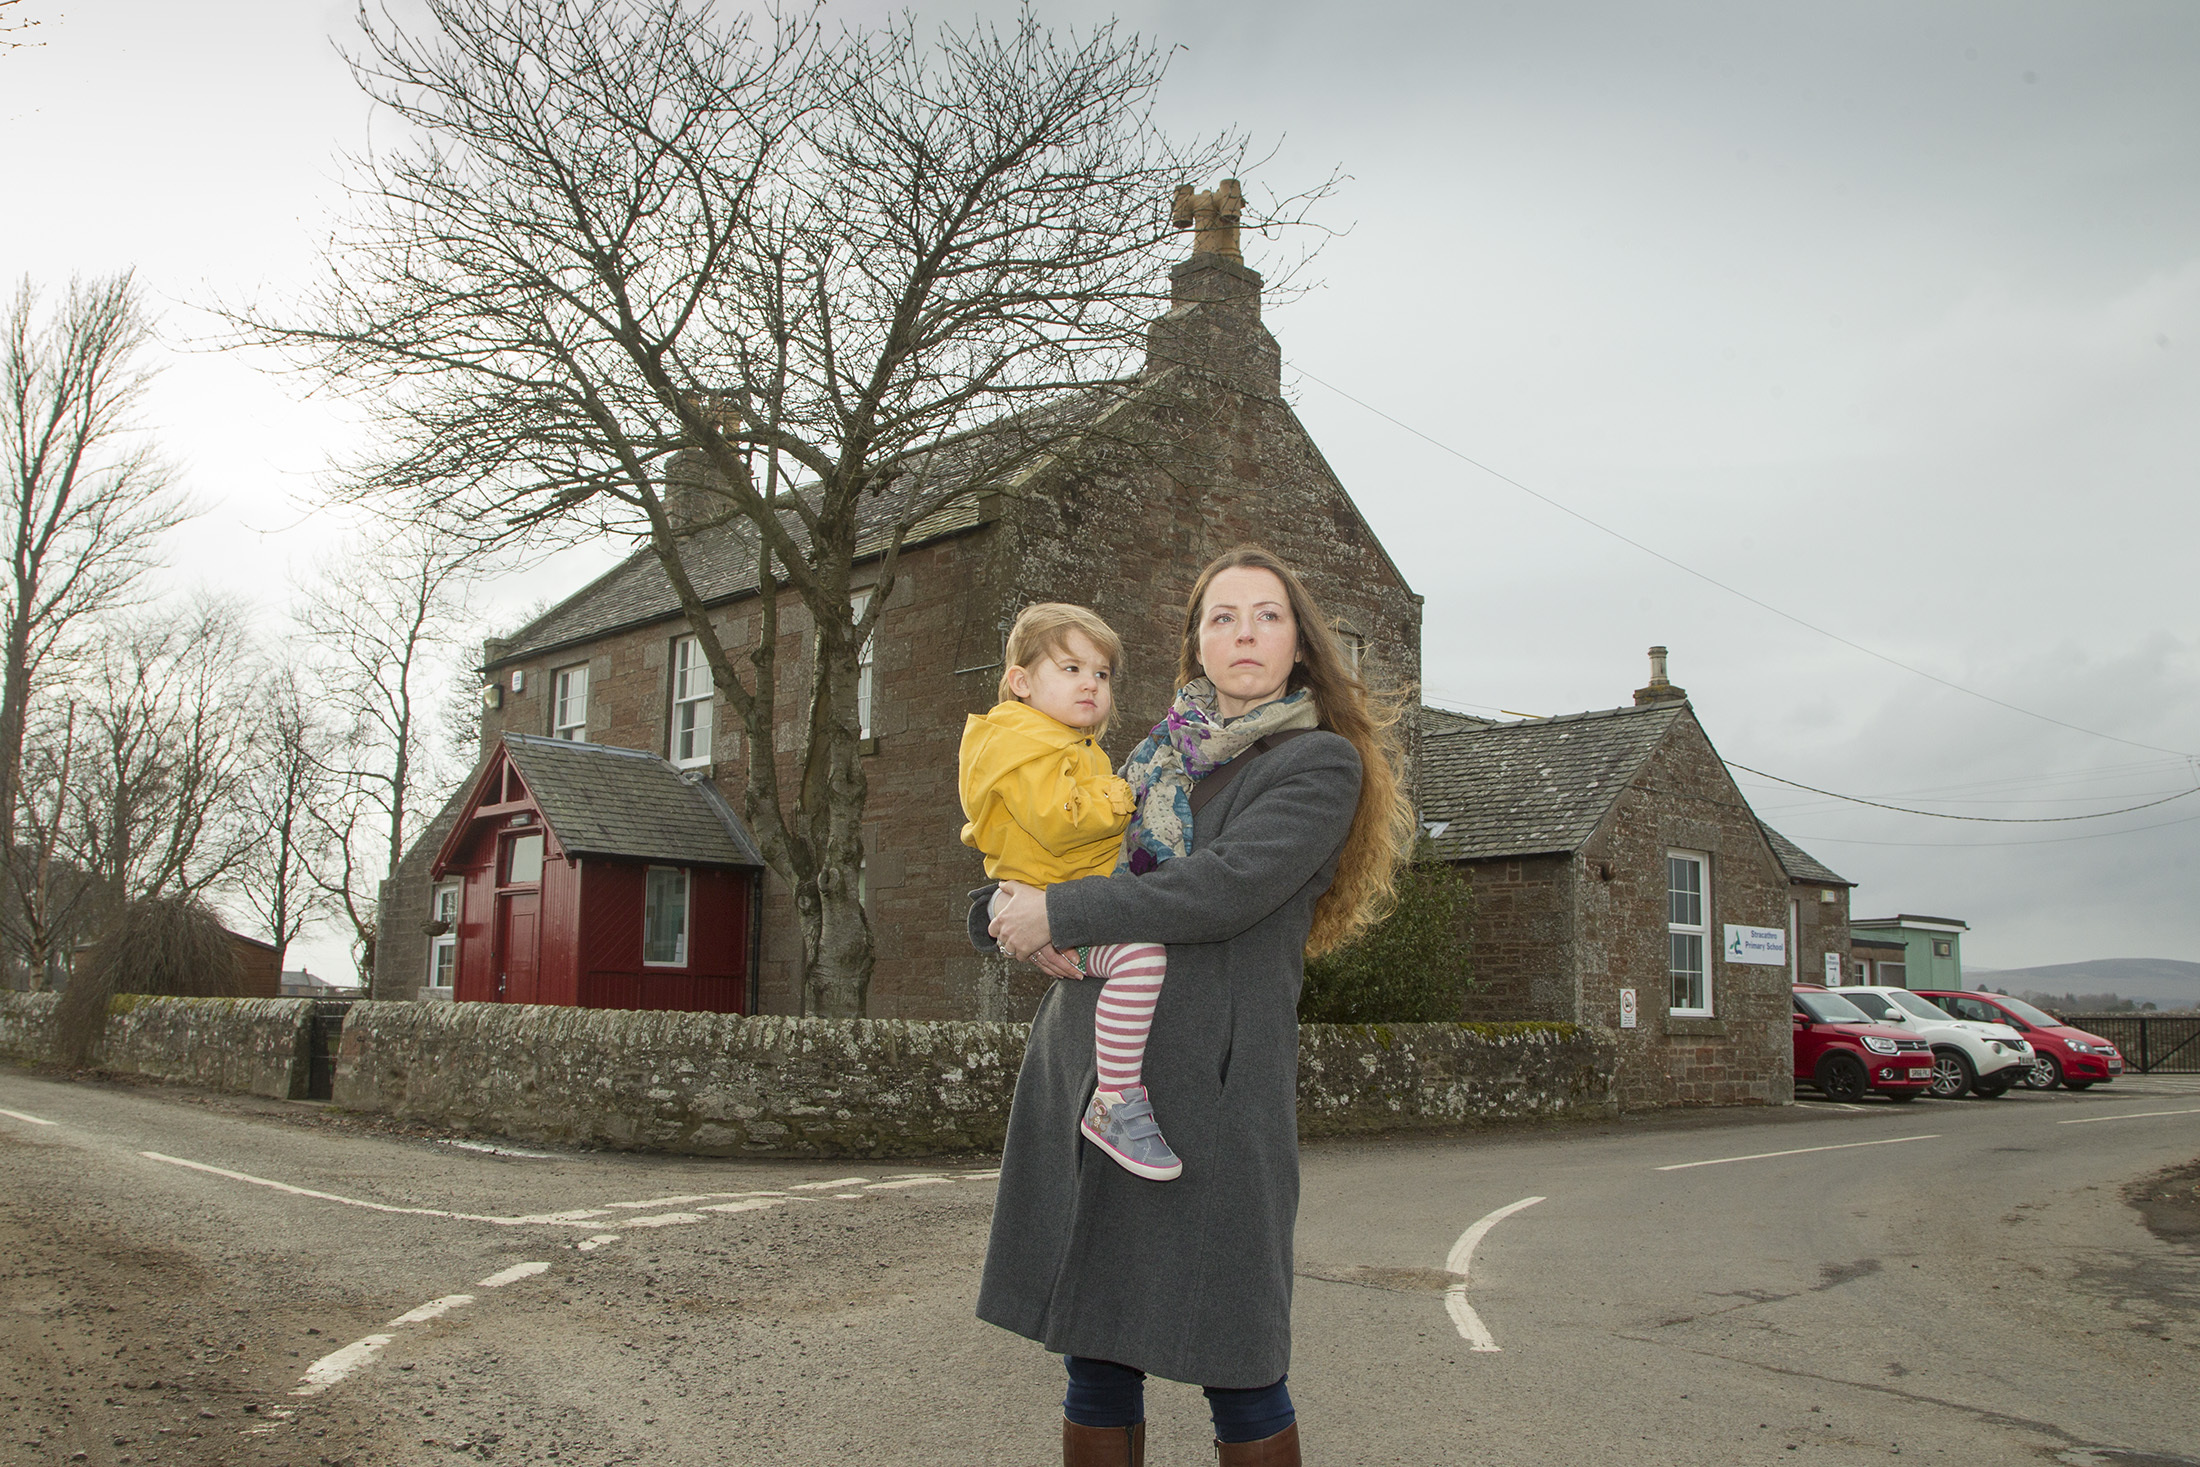 Lee Ann Waddell of Stracathro parent council, a leading campaigner, with her daughter Zara outside Stracathro primary